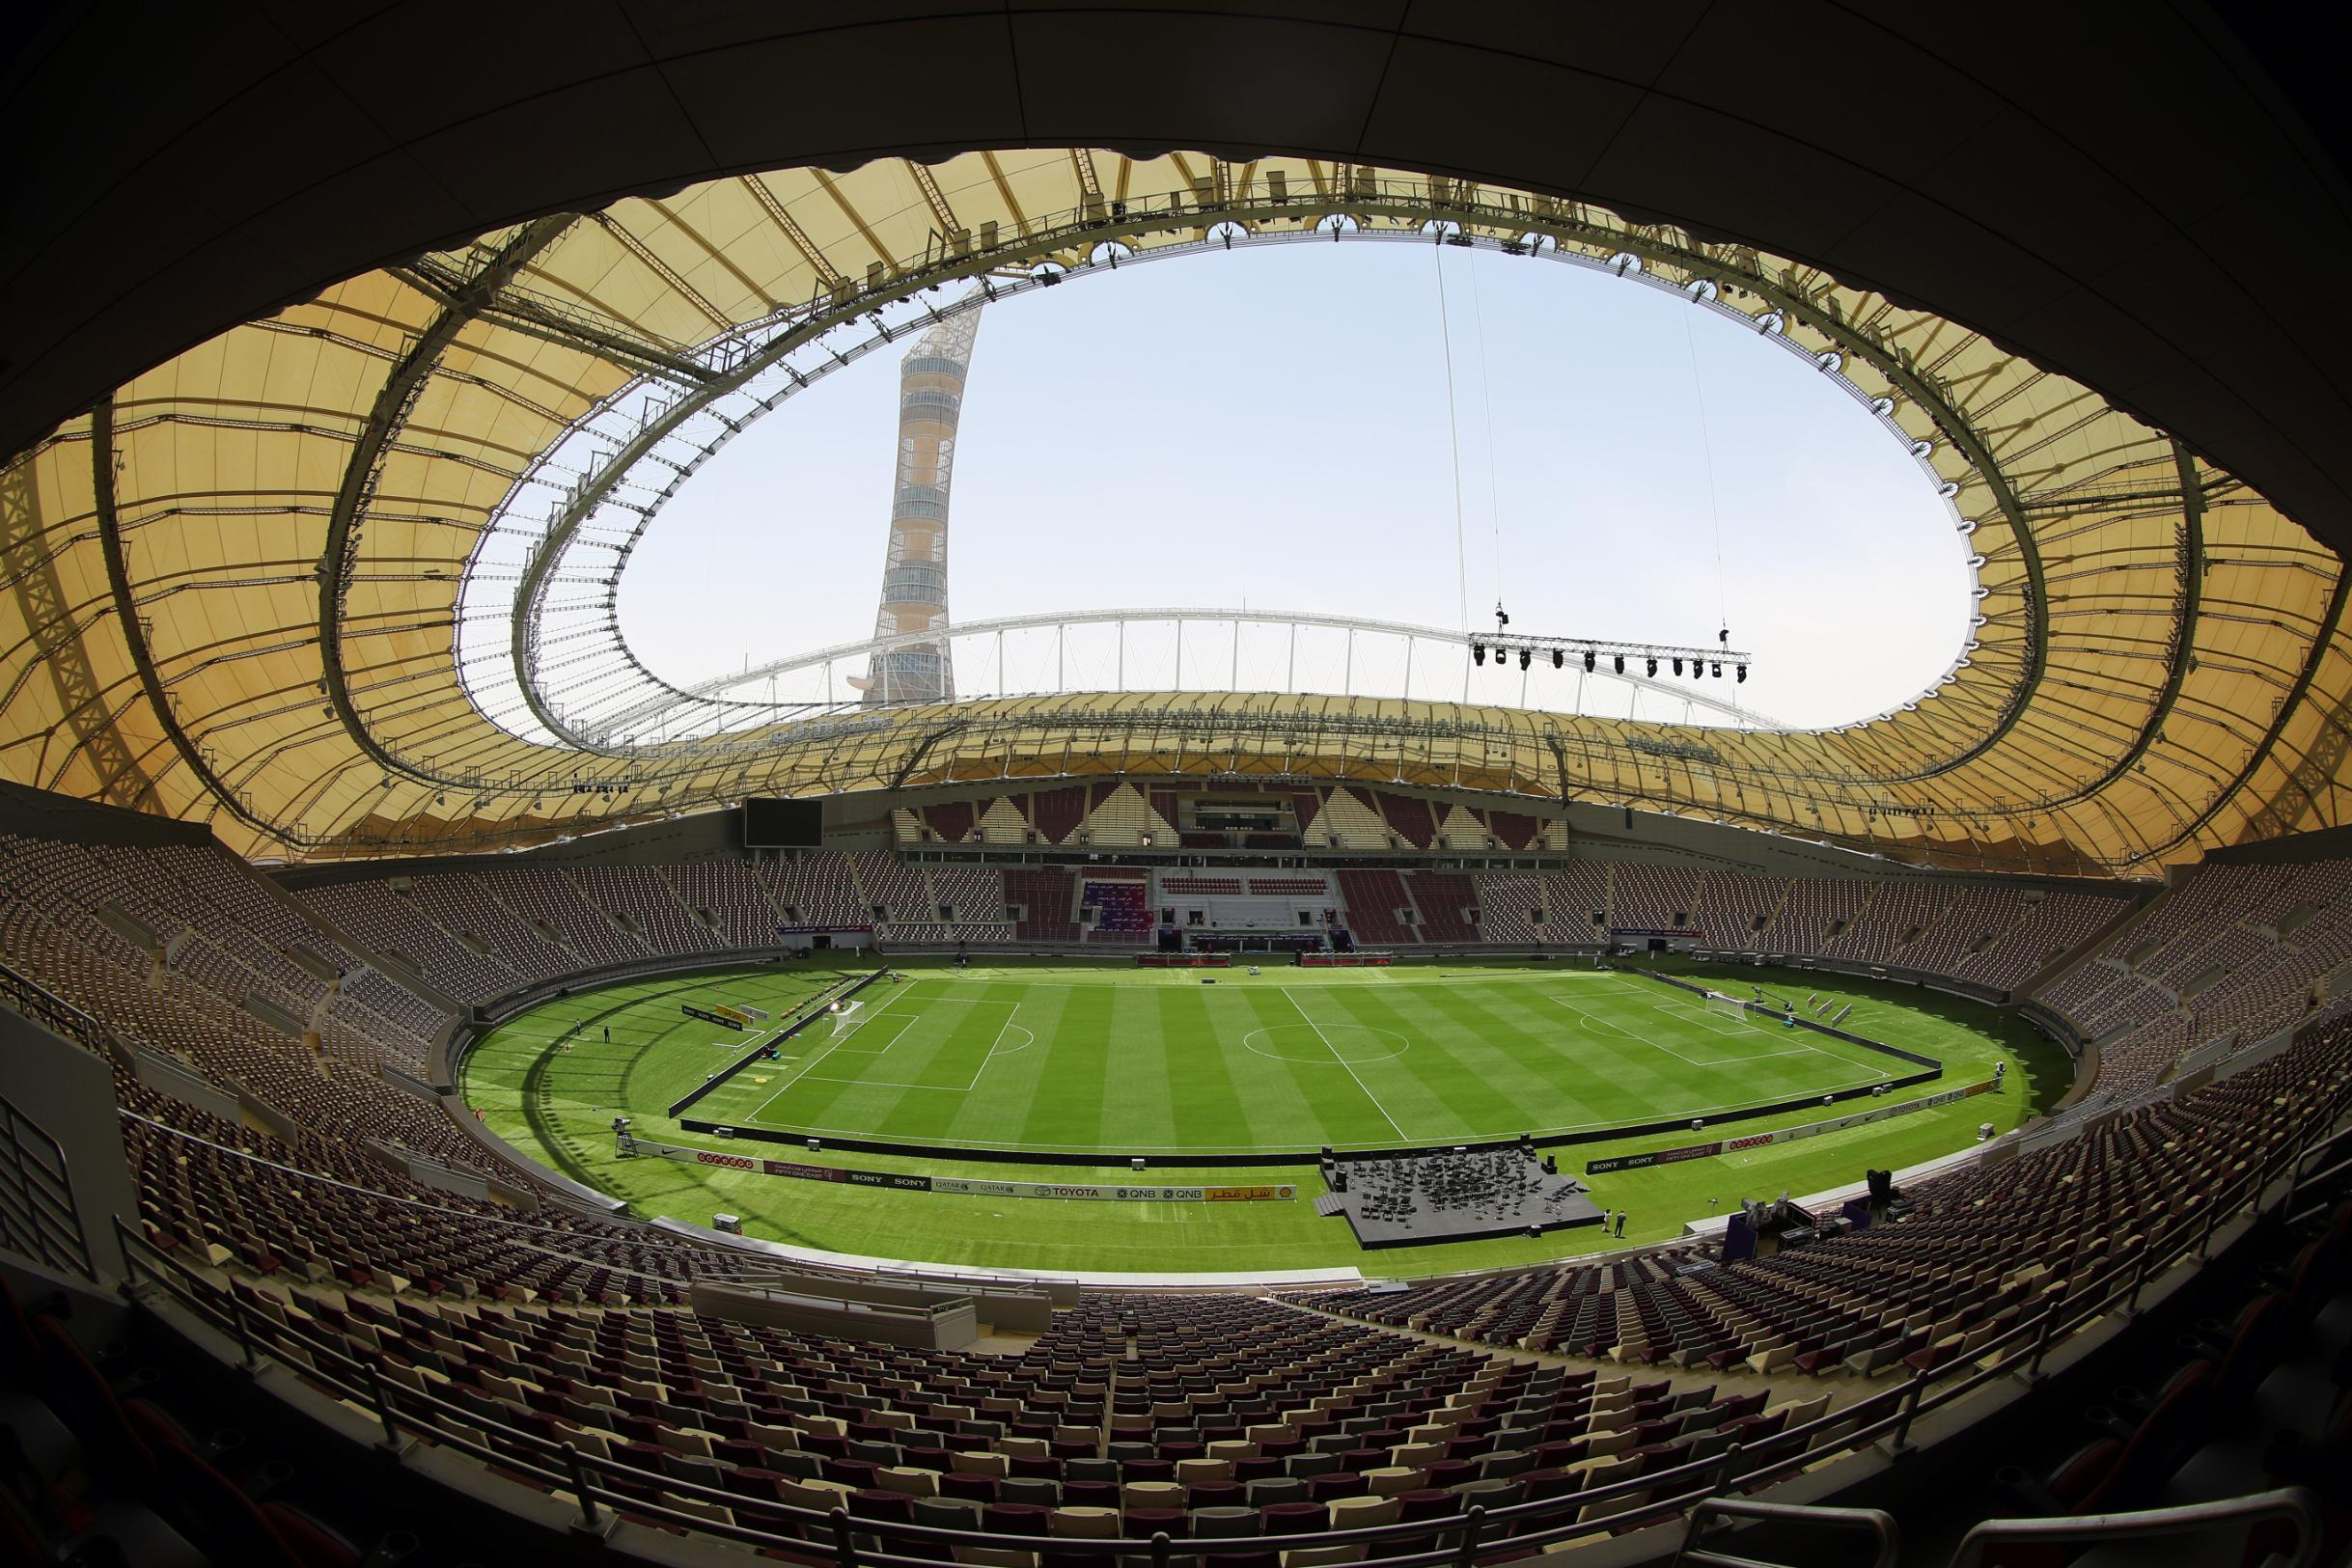 Qatar 2022 World Cup will feature an unprecedented four games per day during the group stages